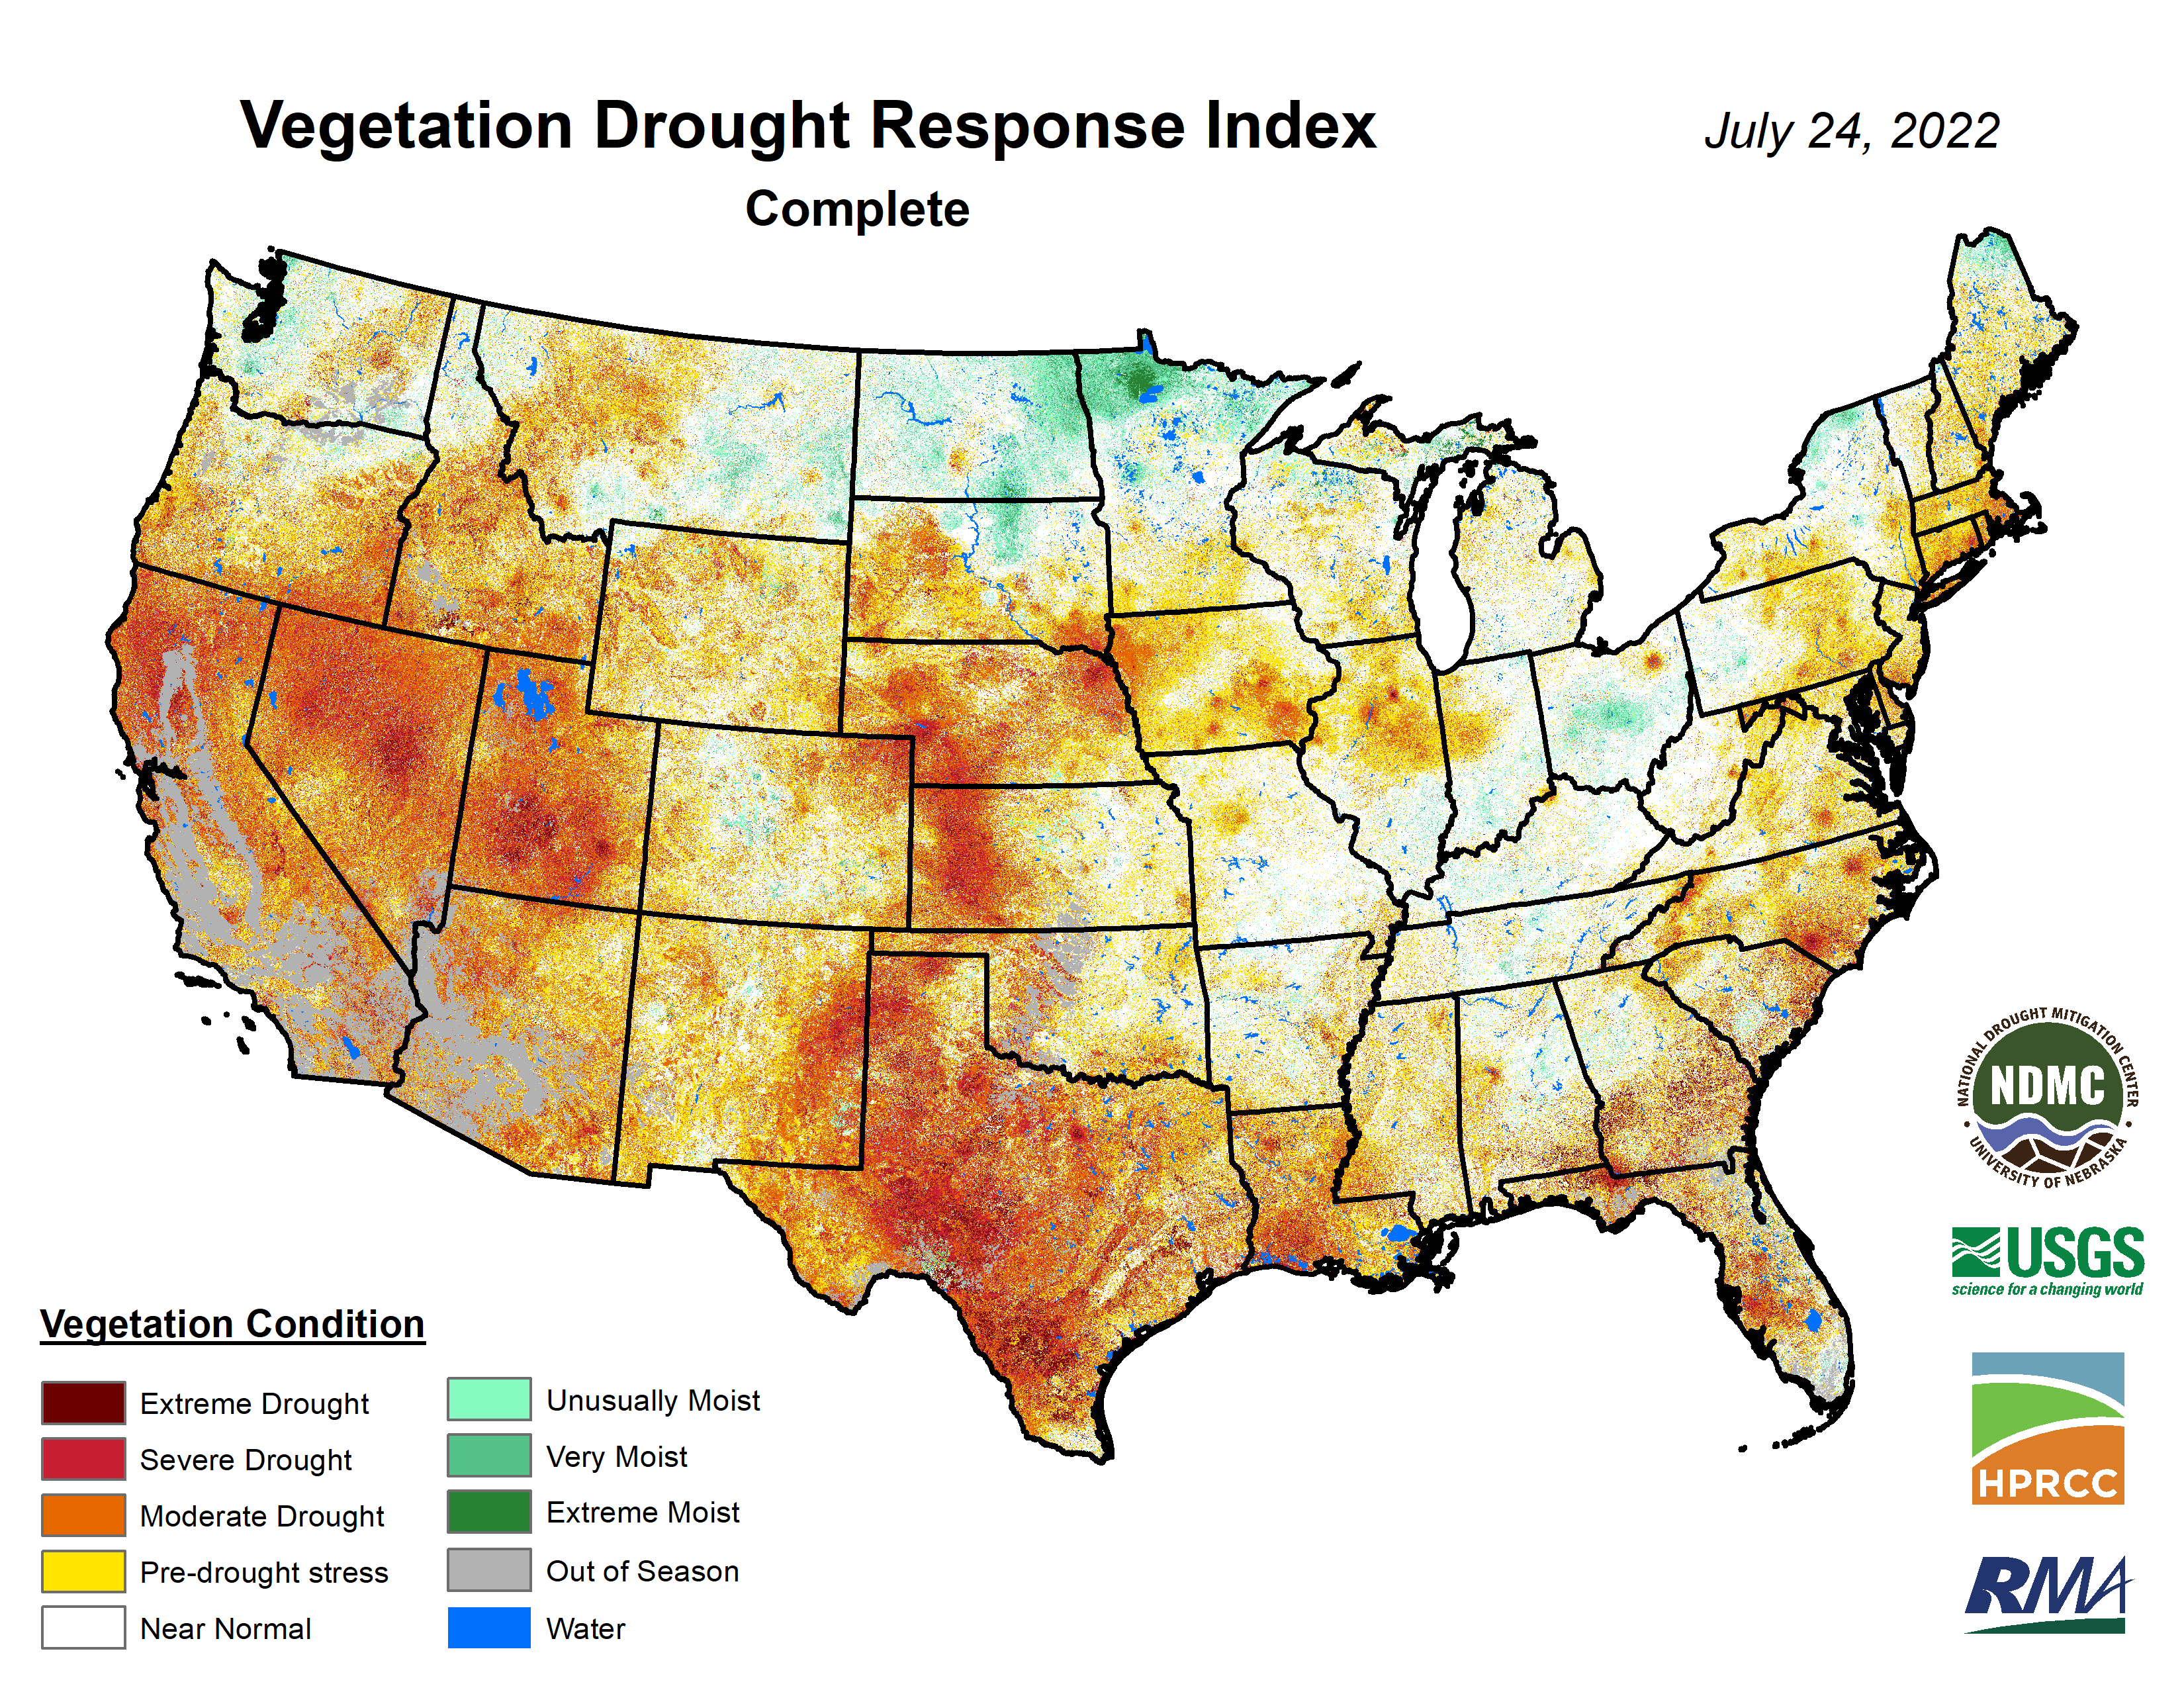 sample Vegetation Drought Response Index map